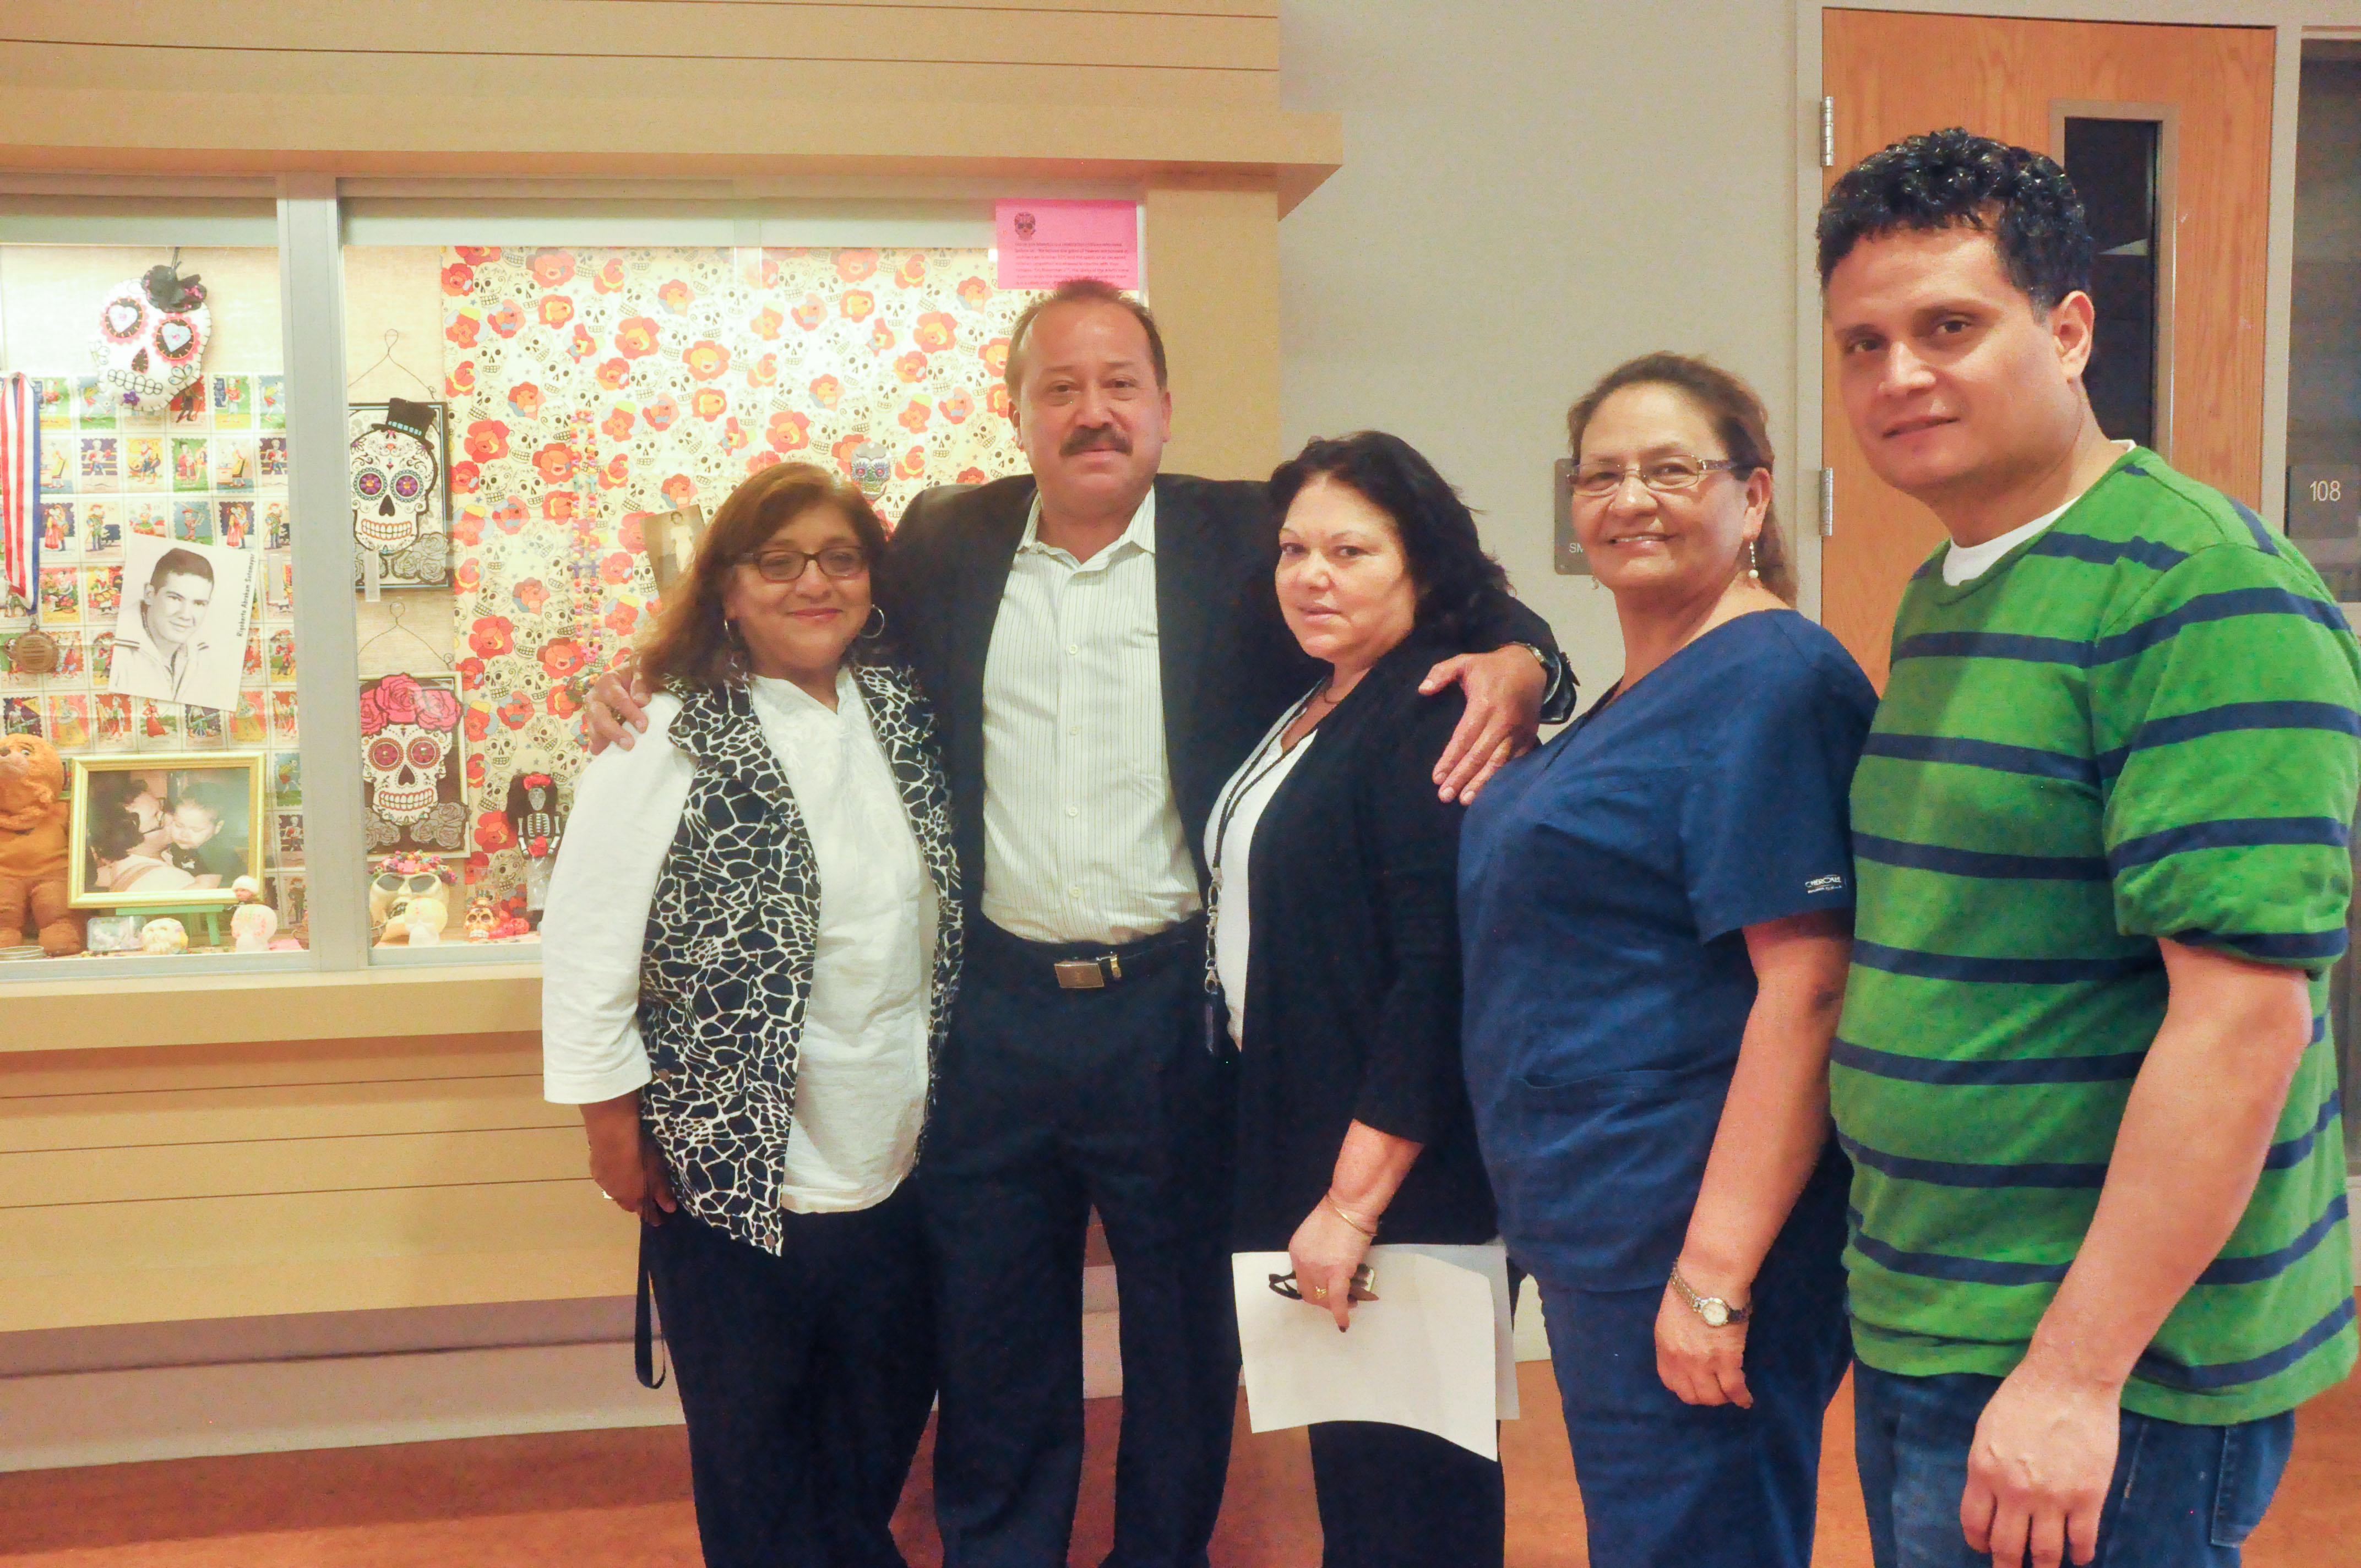 (L-R) Silvia Urrutia, Dean Jorge Bell, Silvia Elizabeth Noyola, Teresa Villicana and Salvador Ortiz-Solovie contributed to making a total of eight altars displayed at City College Mission Campus on Thursday, Oct. 29 2015. (Photo by Bridgid Skiba/The Guardsman)